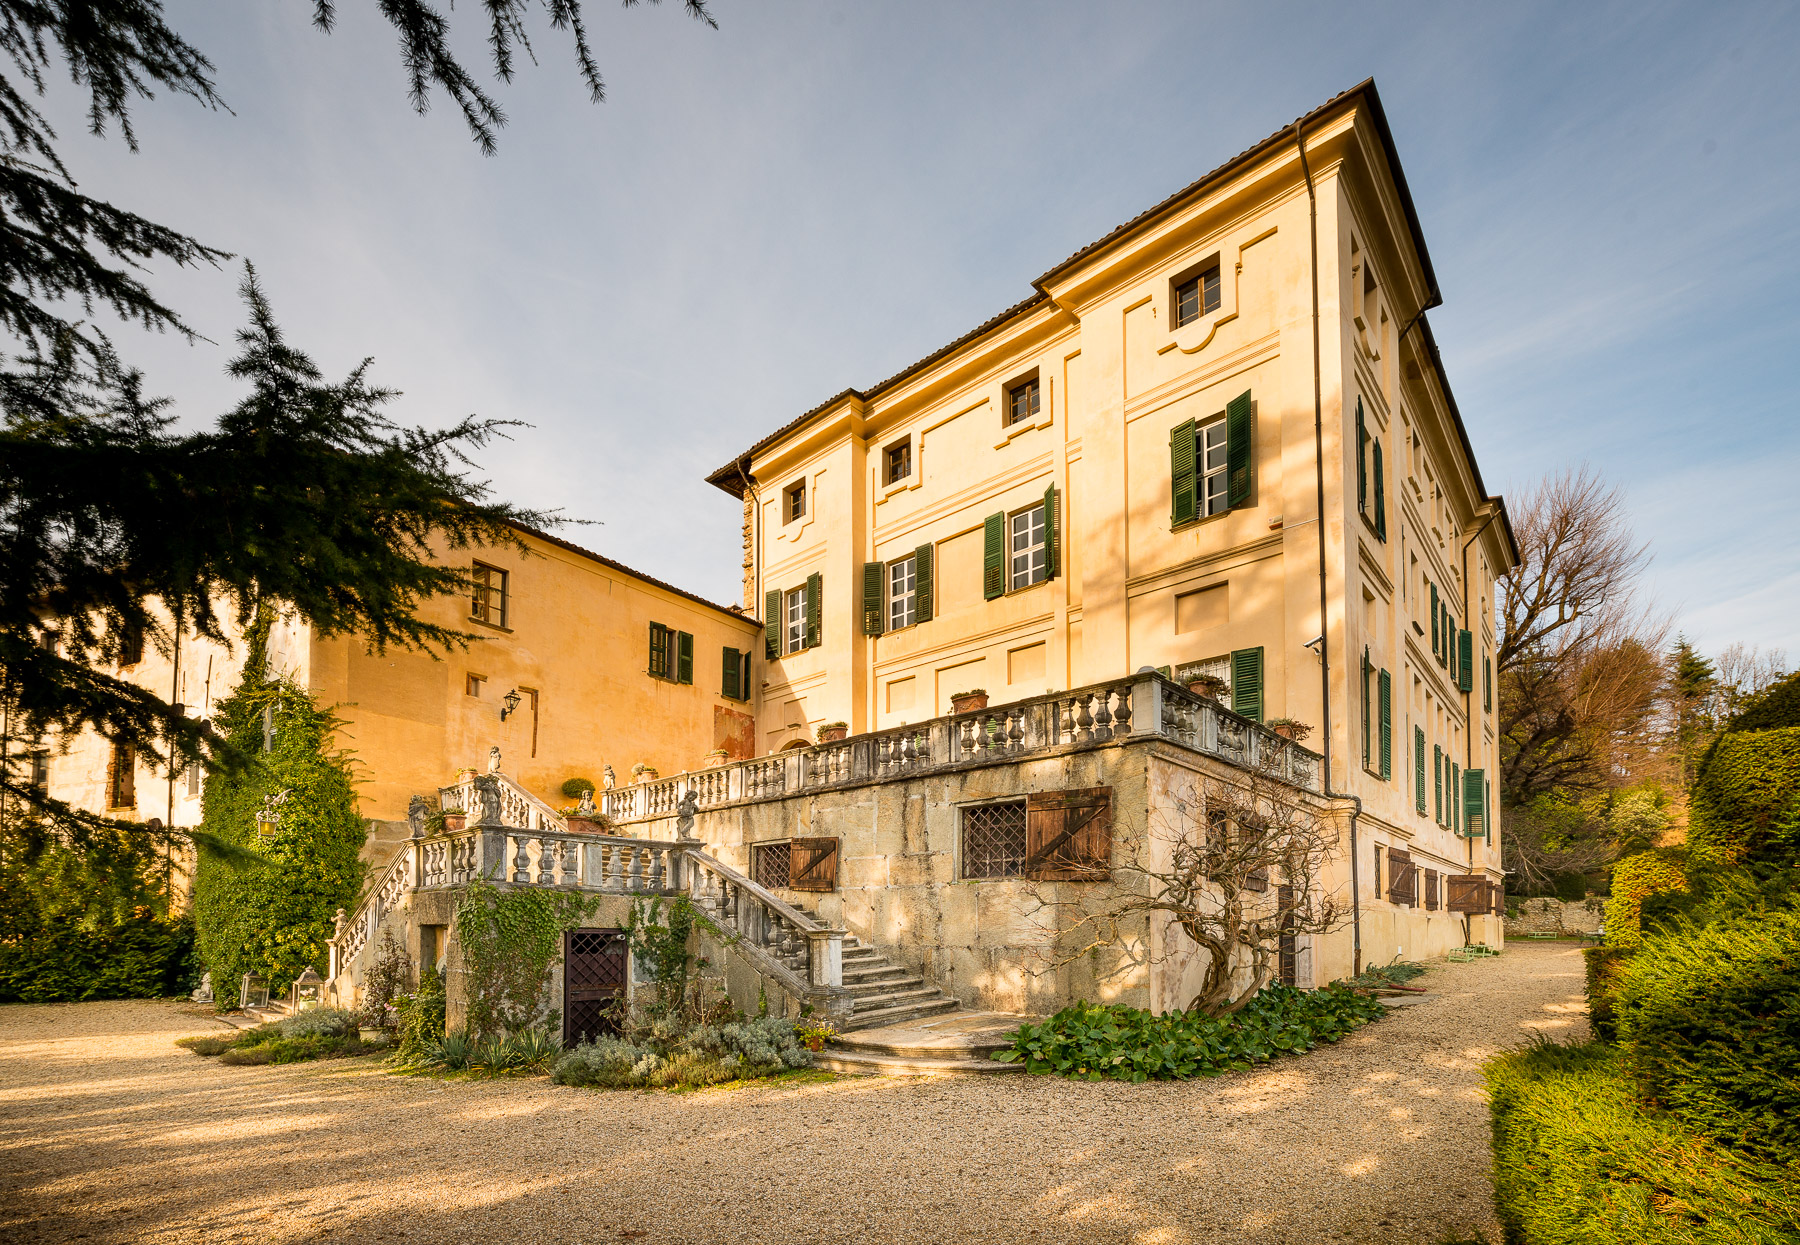 Single Family Home for Sale at Stately Castle in Piedmont Piazzetta del Castello Other Turin, 10040 Italy